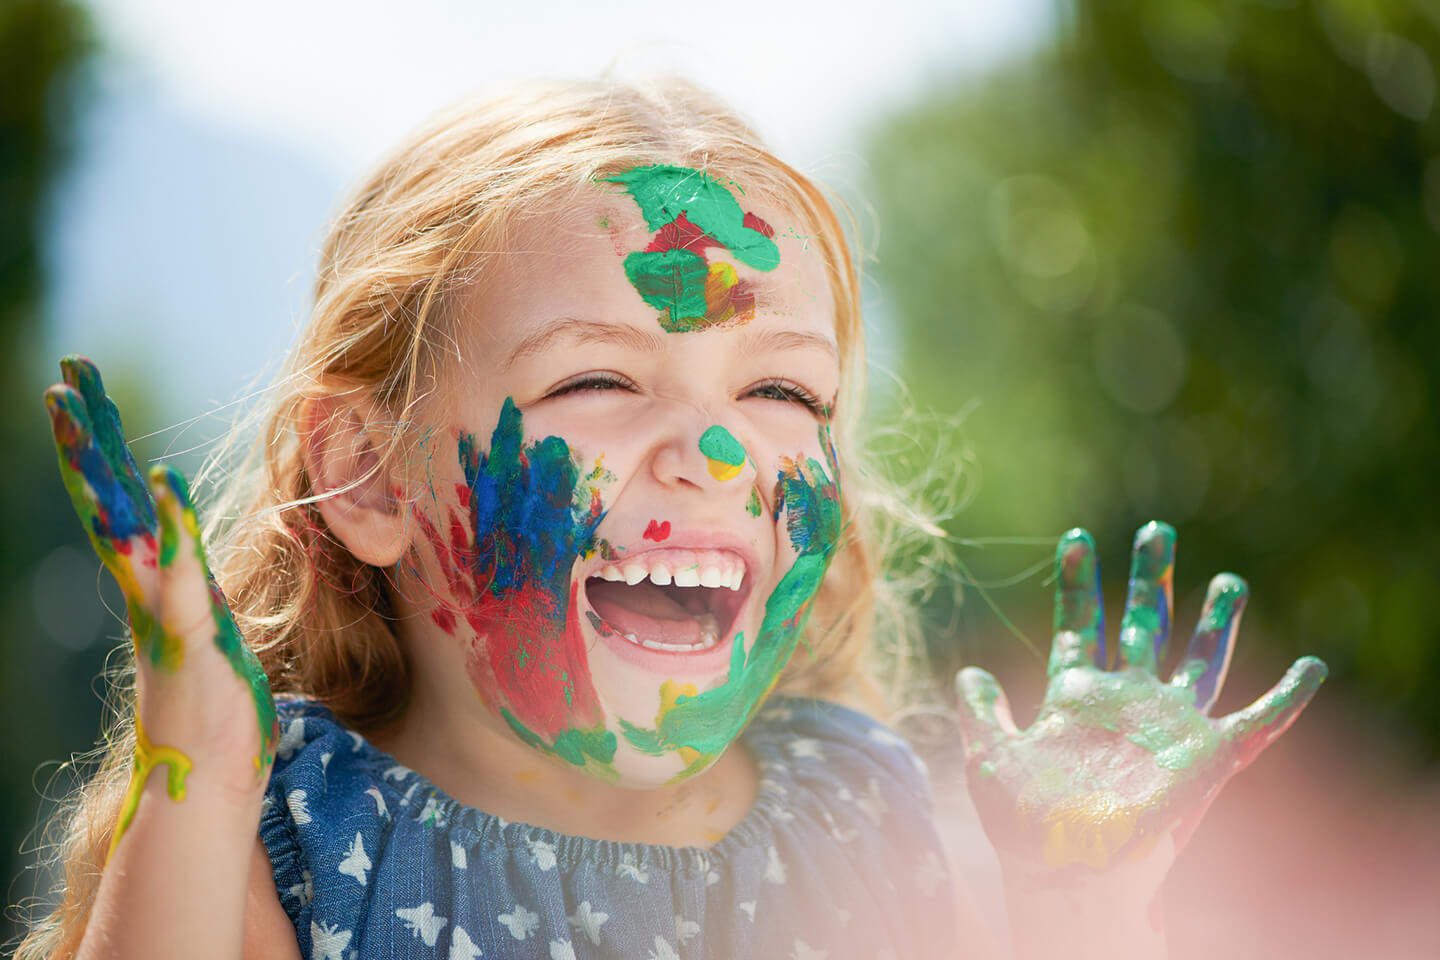 Young girl laughing while face painting on her face with her hands at a childcare center in Strathfield area Sydney